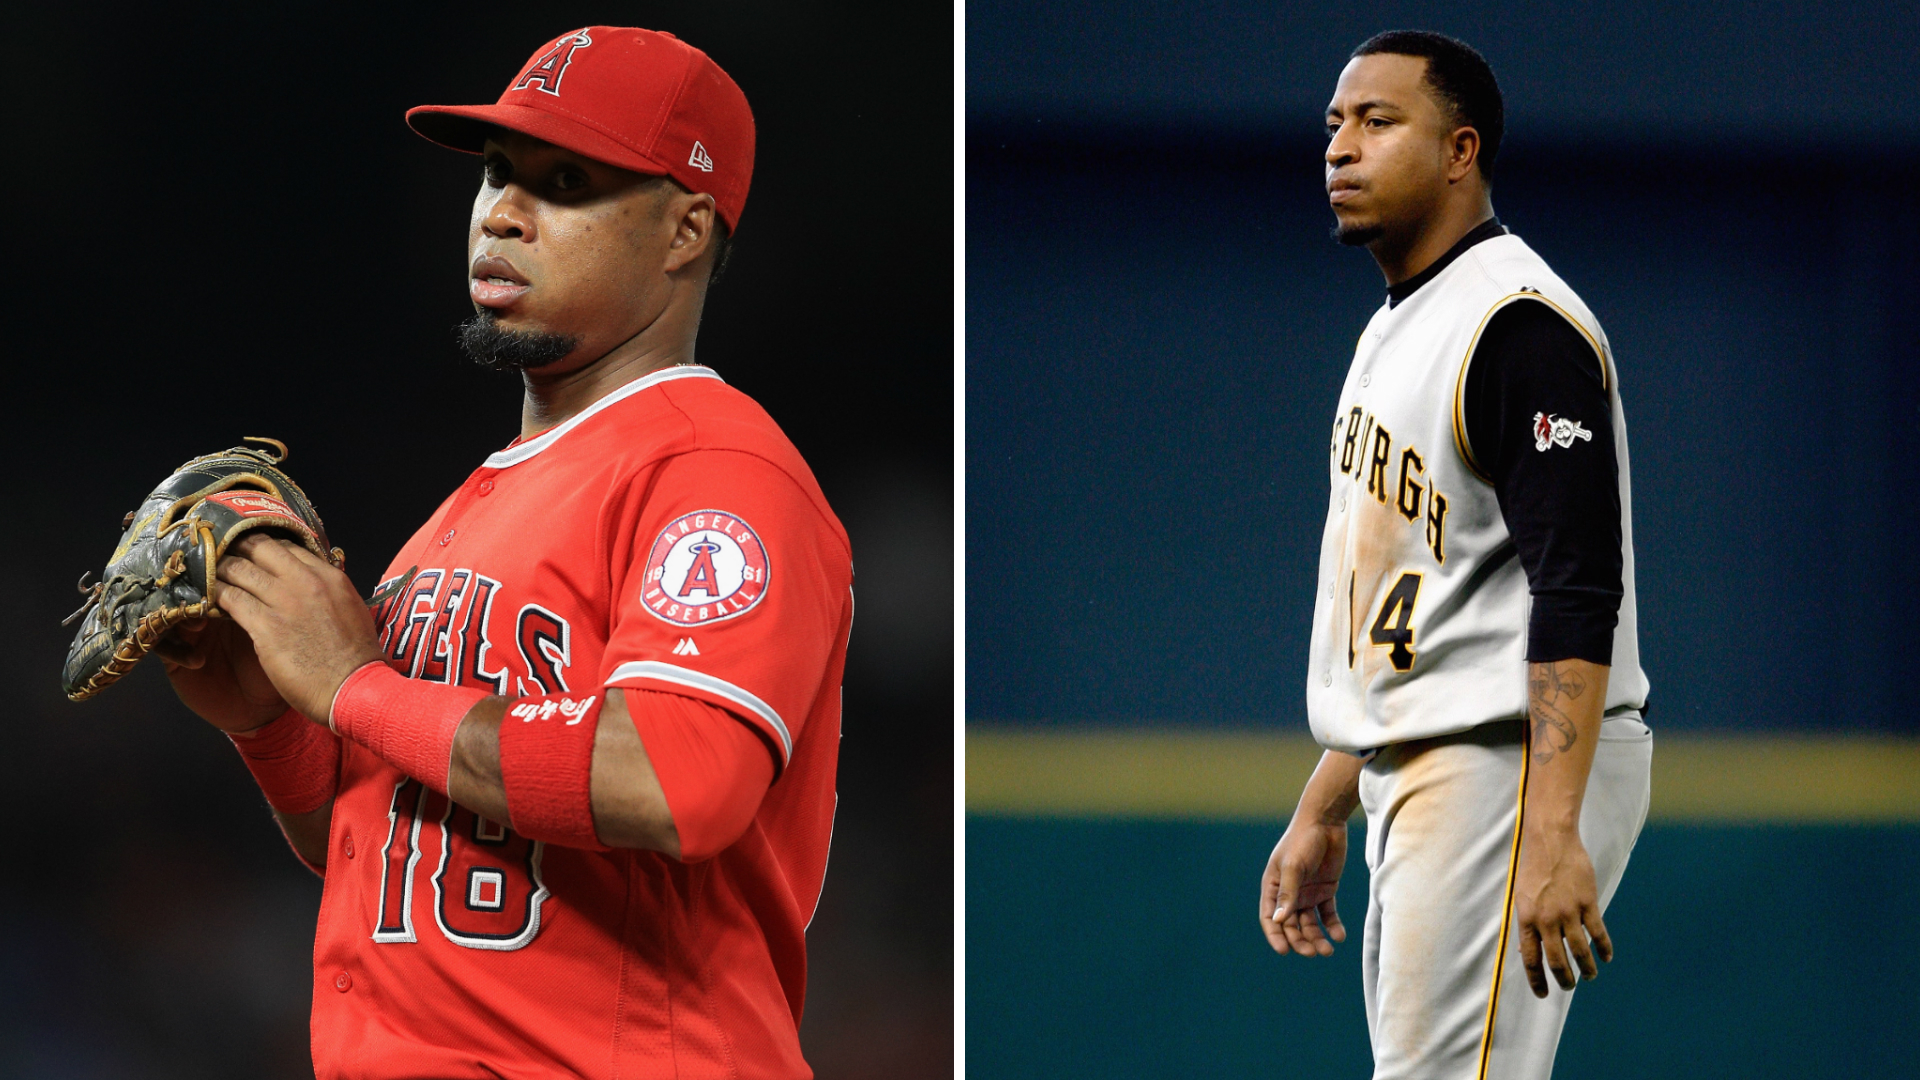 Former MLB Players Luis Valbuena, Jose Castillo Killed In Venezuelan Car Crash